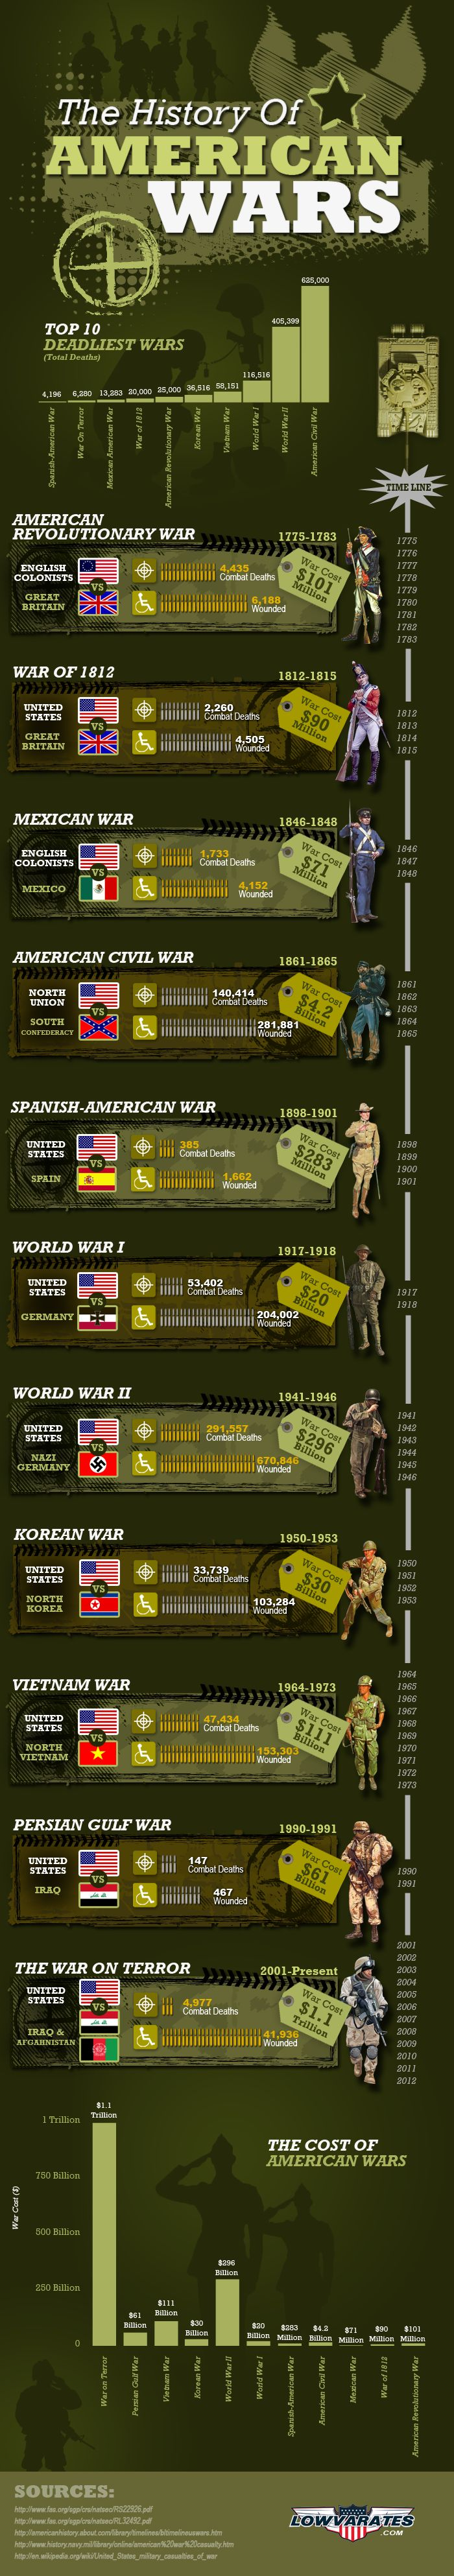 The History of American Wars - Veterans Day Infographic-There are a couple things that should probably be tweaked on here (like we didn't just fight Nazi Germany during WWII) but overall interesting info graphic